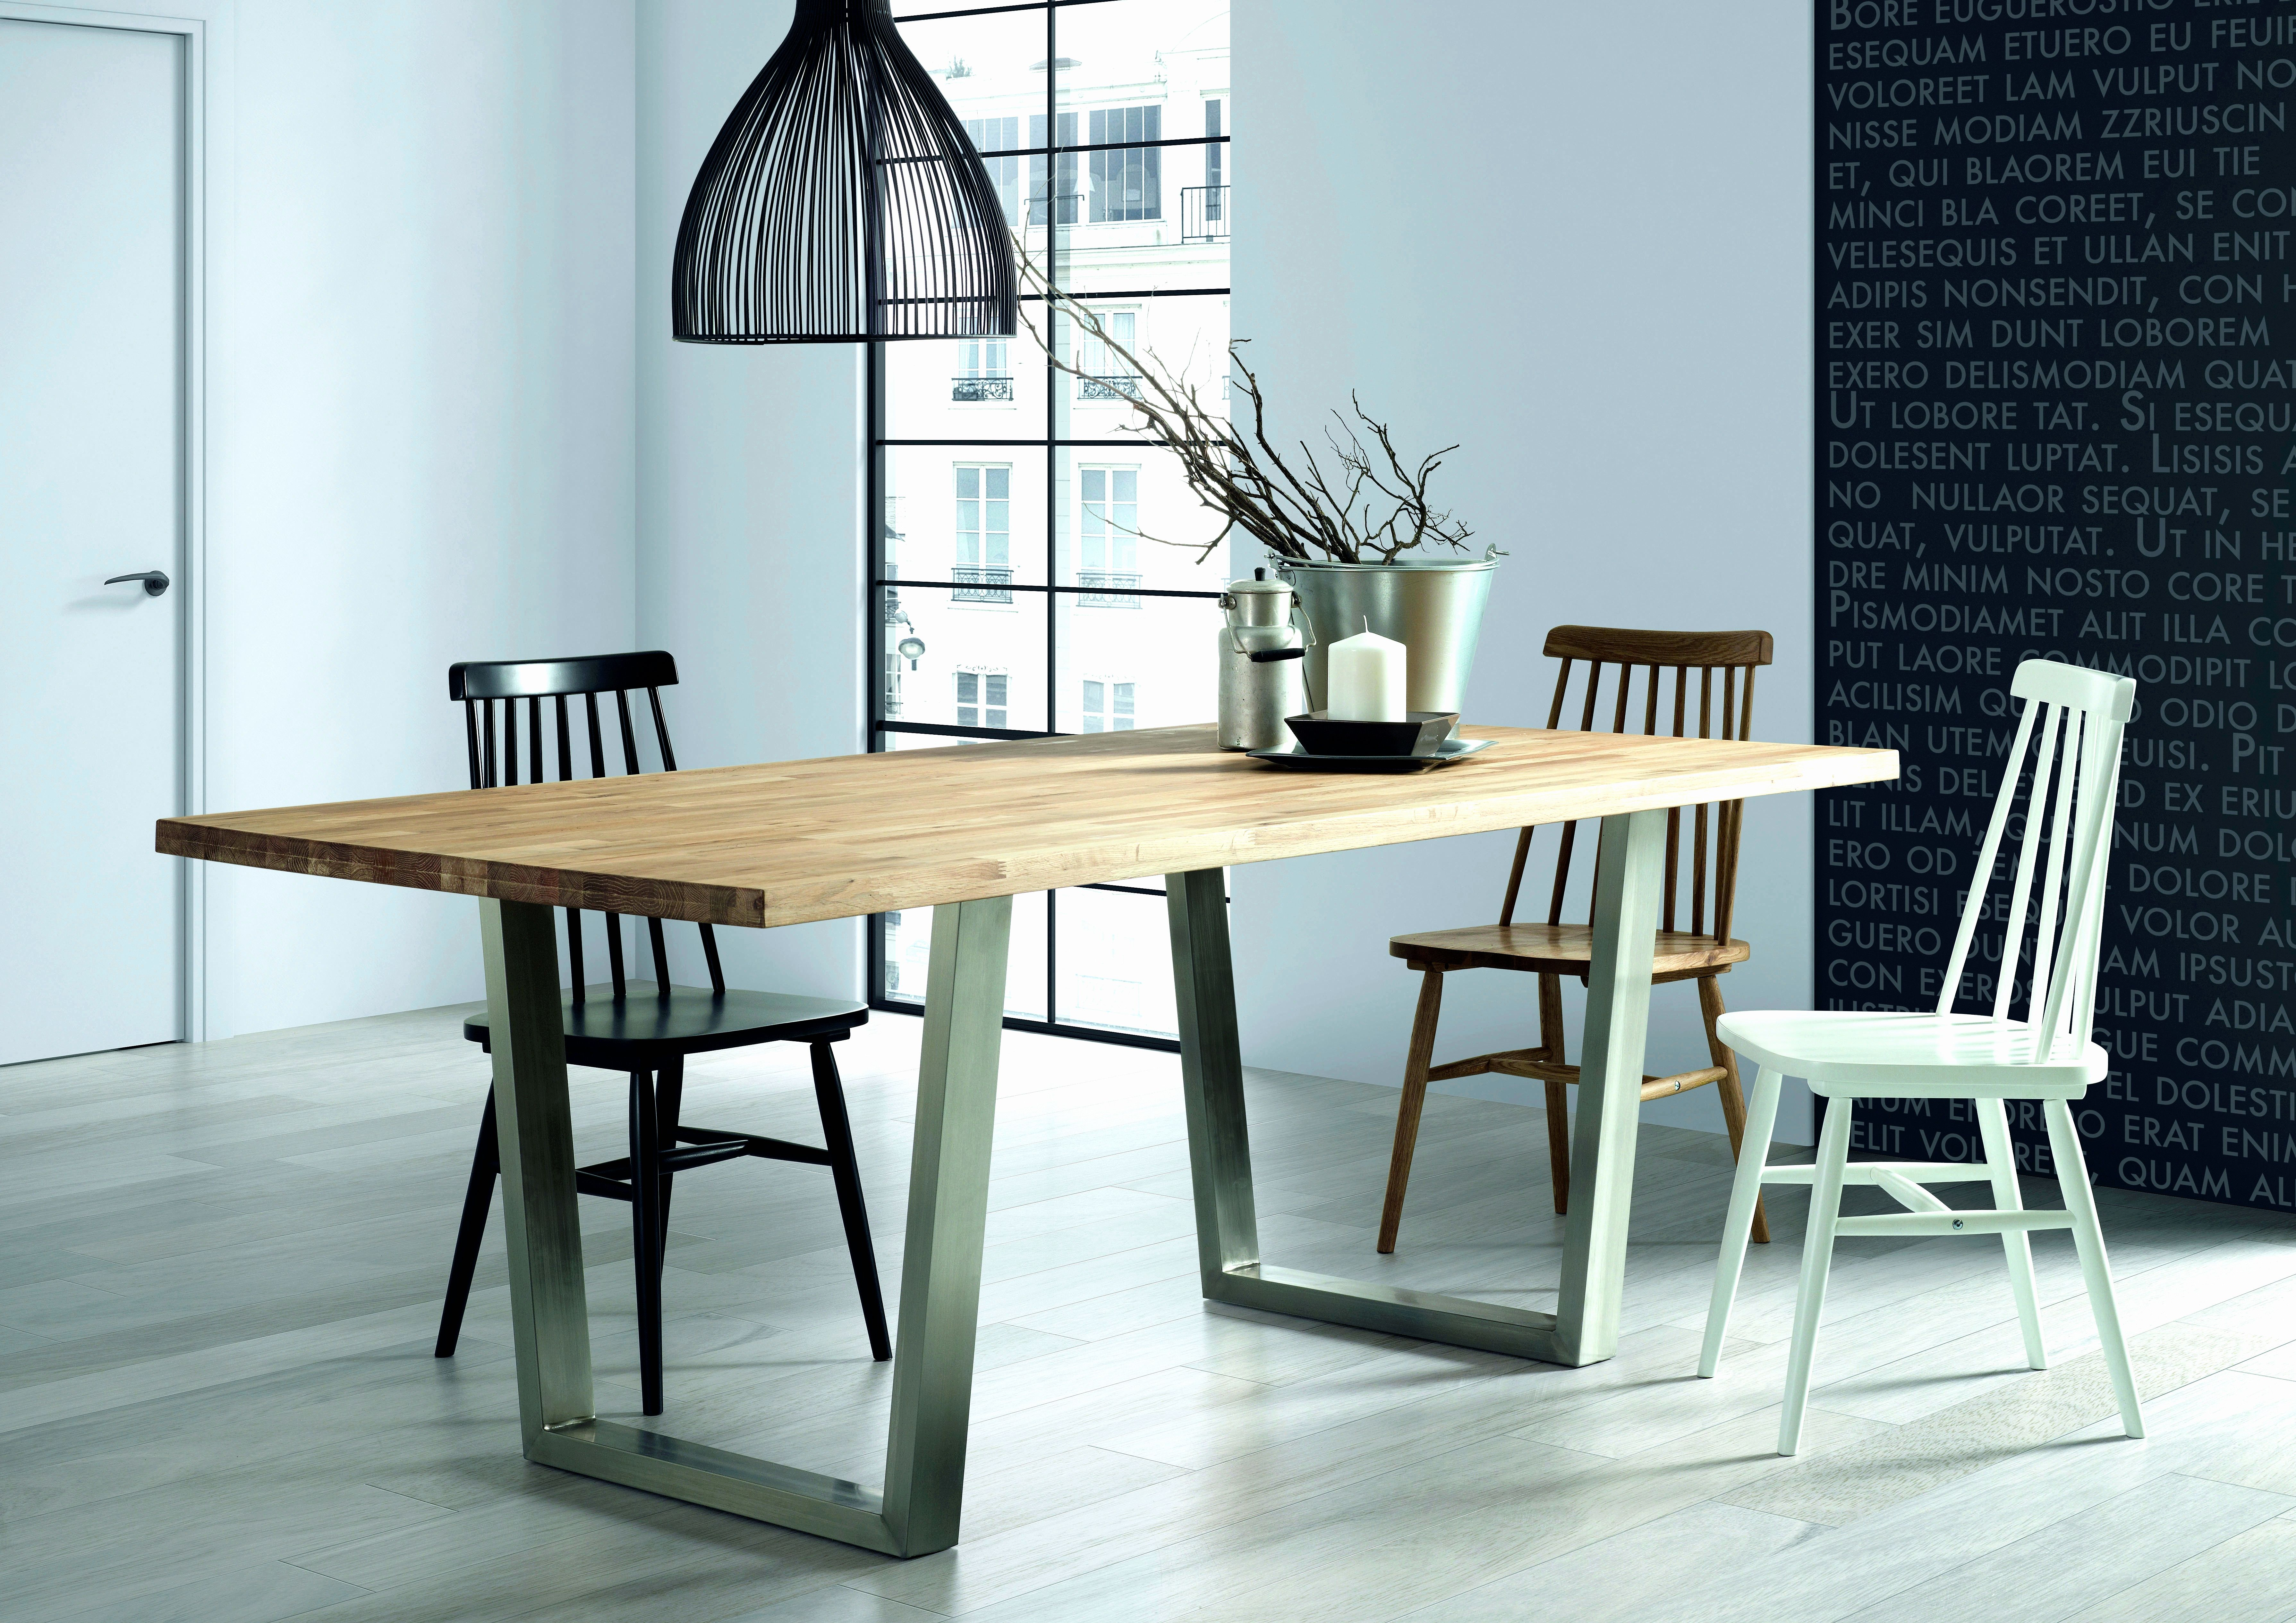 New Location Les 2 Alpes Le Bon Coin Round Dining Room Dining Room Small Country Style Dining Room